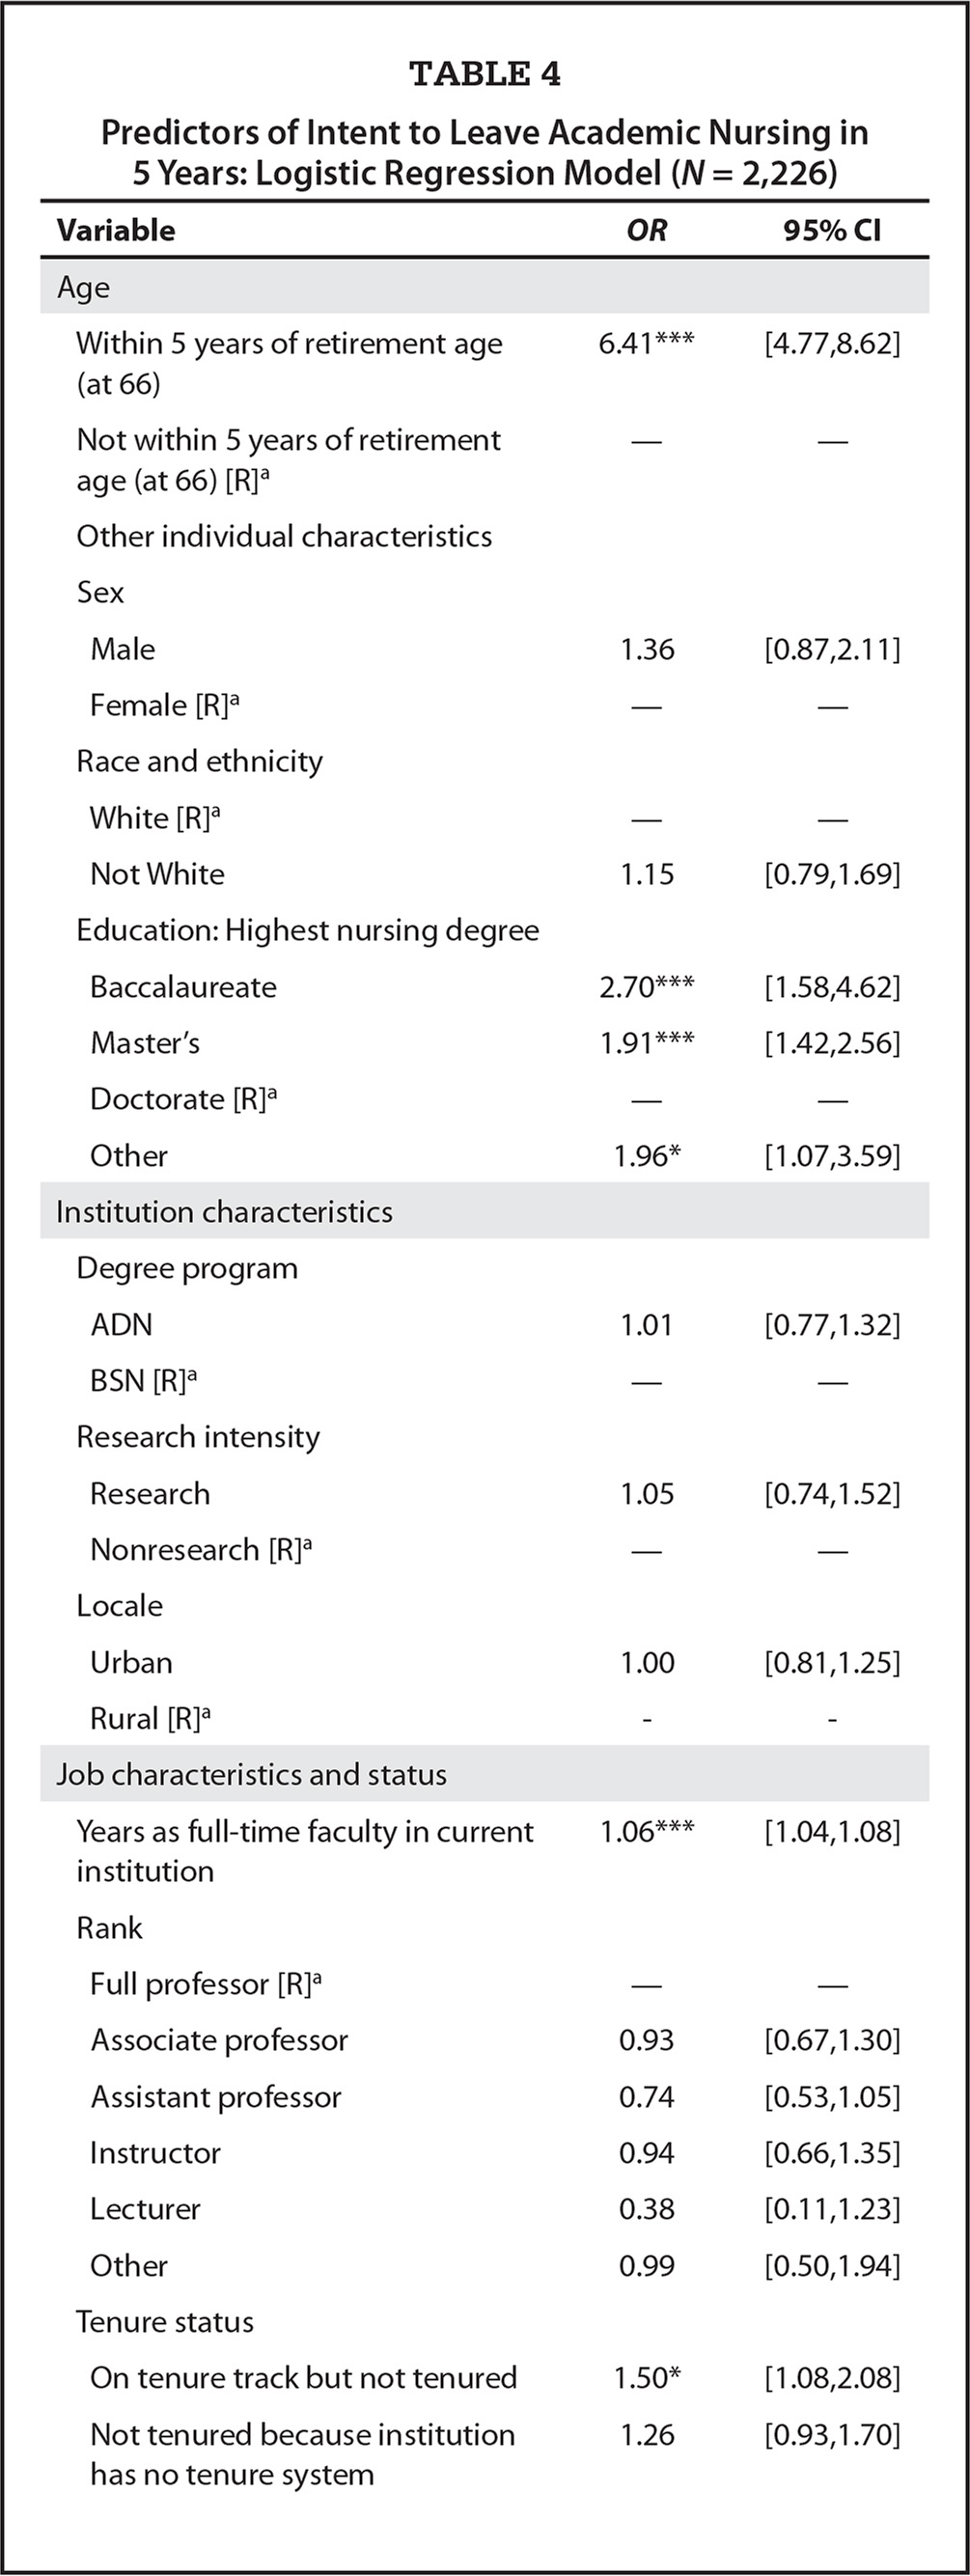 Predictors of Intent to Leave Academic Nursing in 5 Years: Logistic Regression Model (N = 2,226)